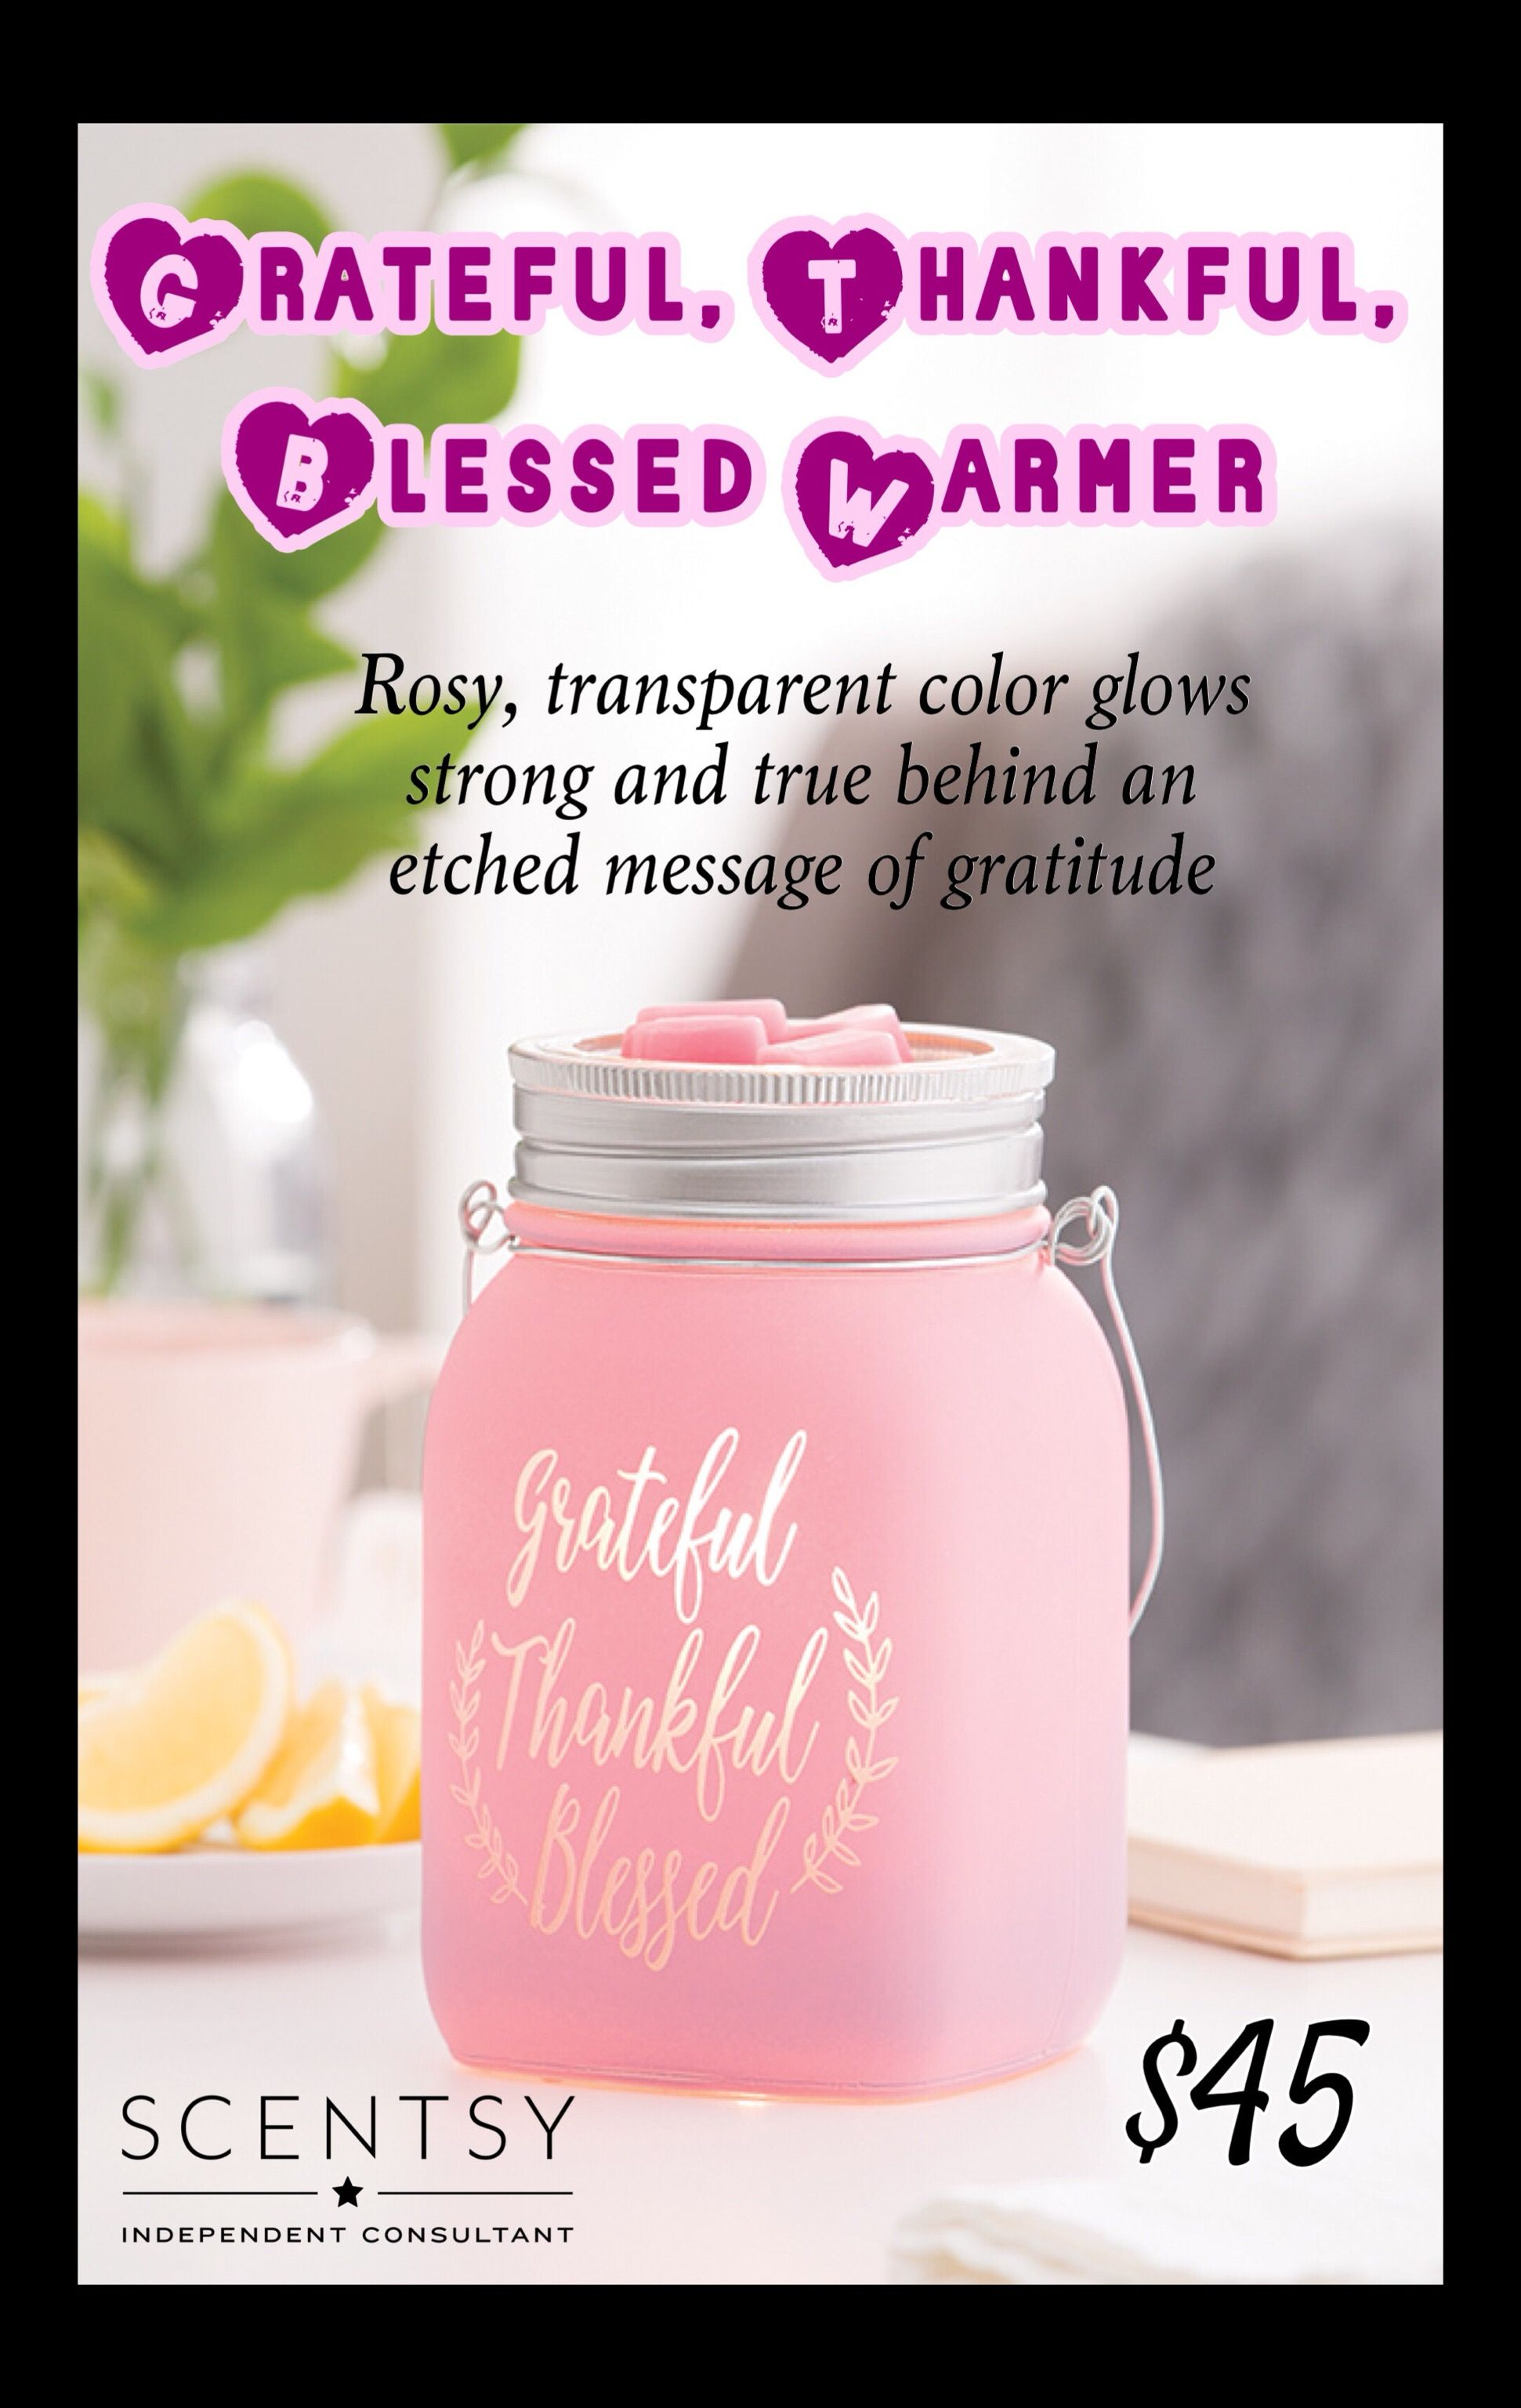 Grateful Thankful Blessed Warmer 2018 Fall Winter Scentsy